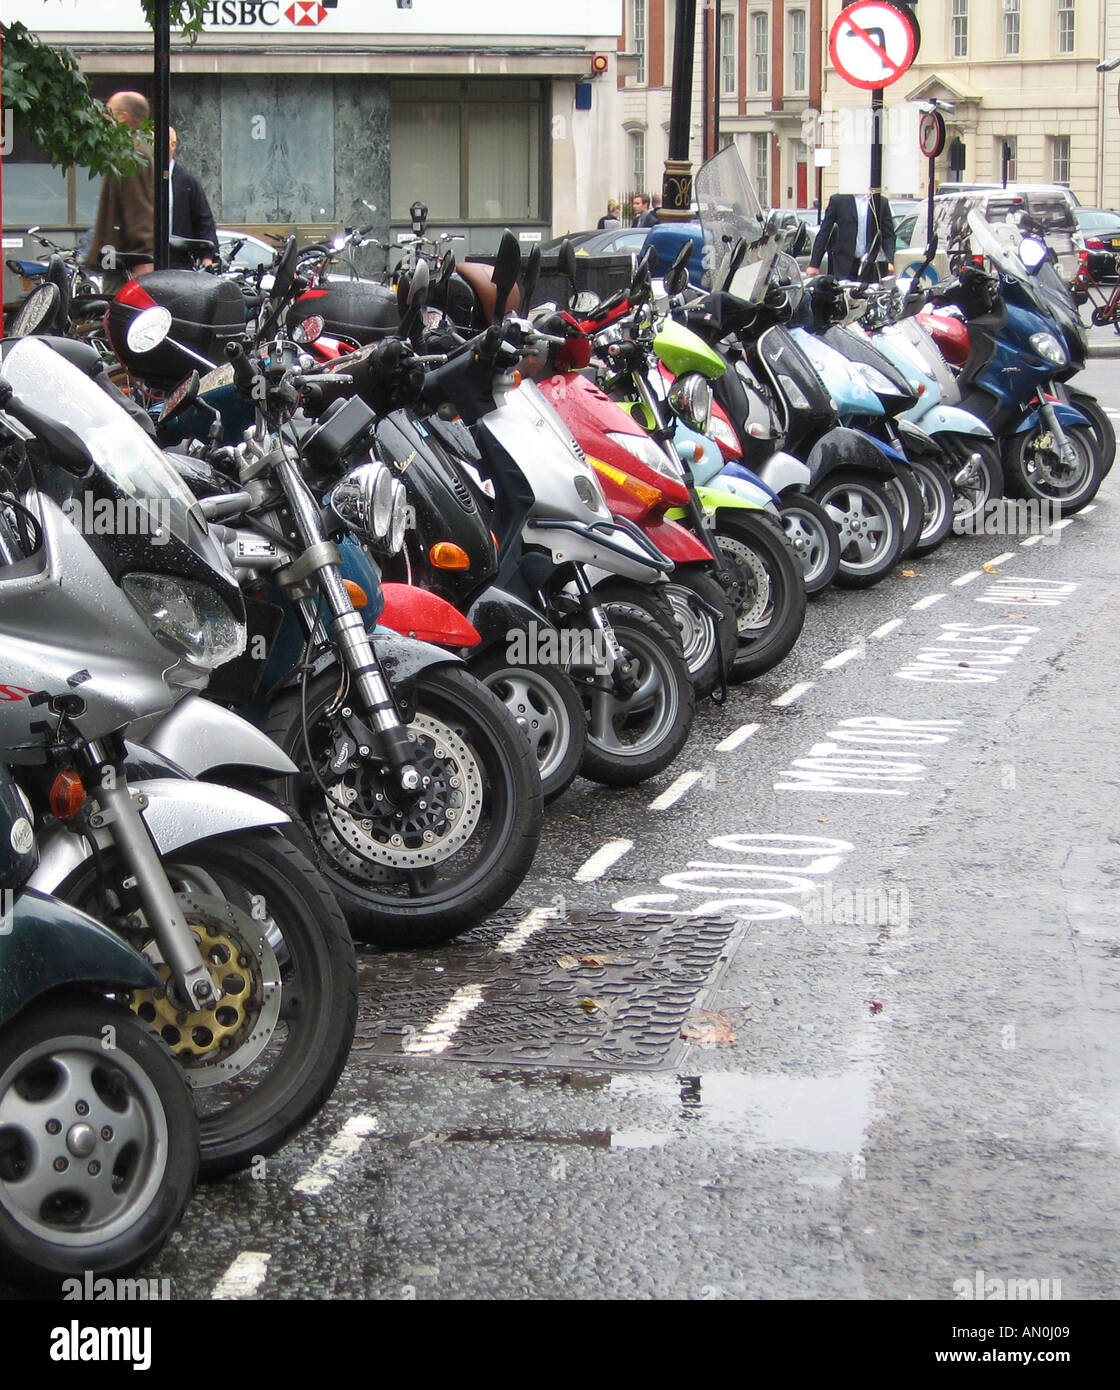 Solo Motor Cycles Scooters - Stock Image